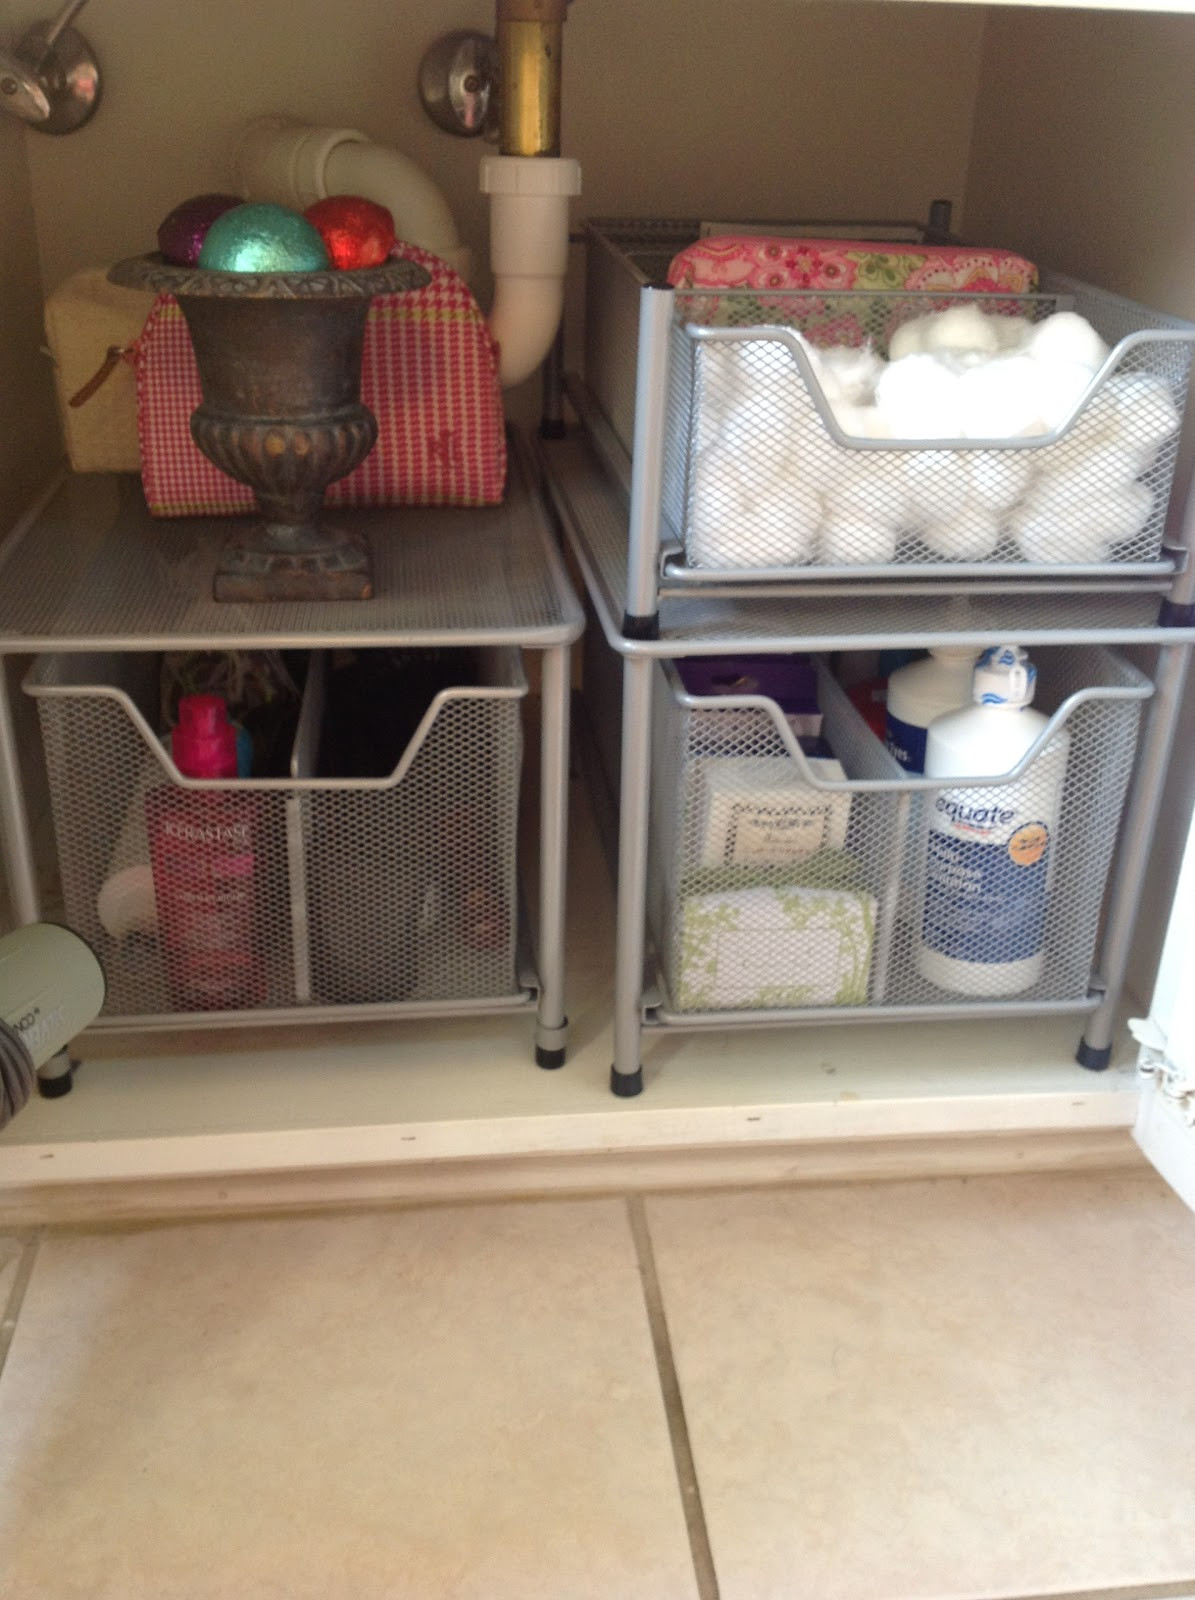 Best ideas about Bathroom Sink Organizer . Save or Pin O is for Organize Under the Bathroom Sink Now.